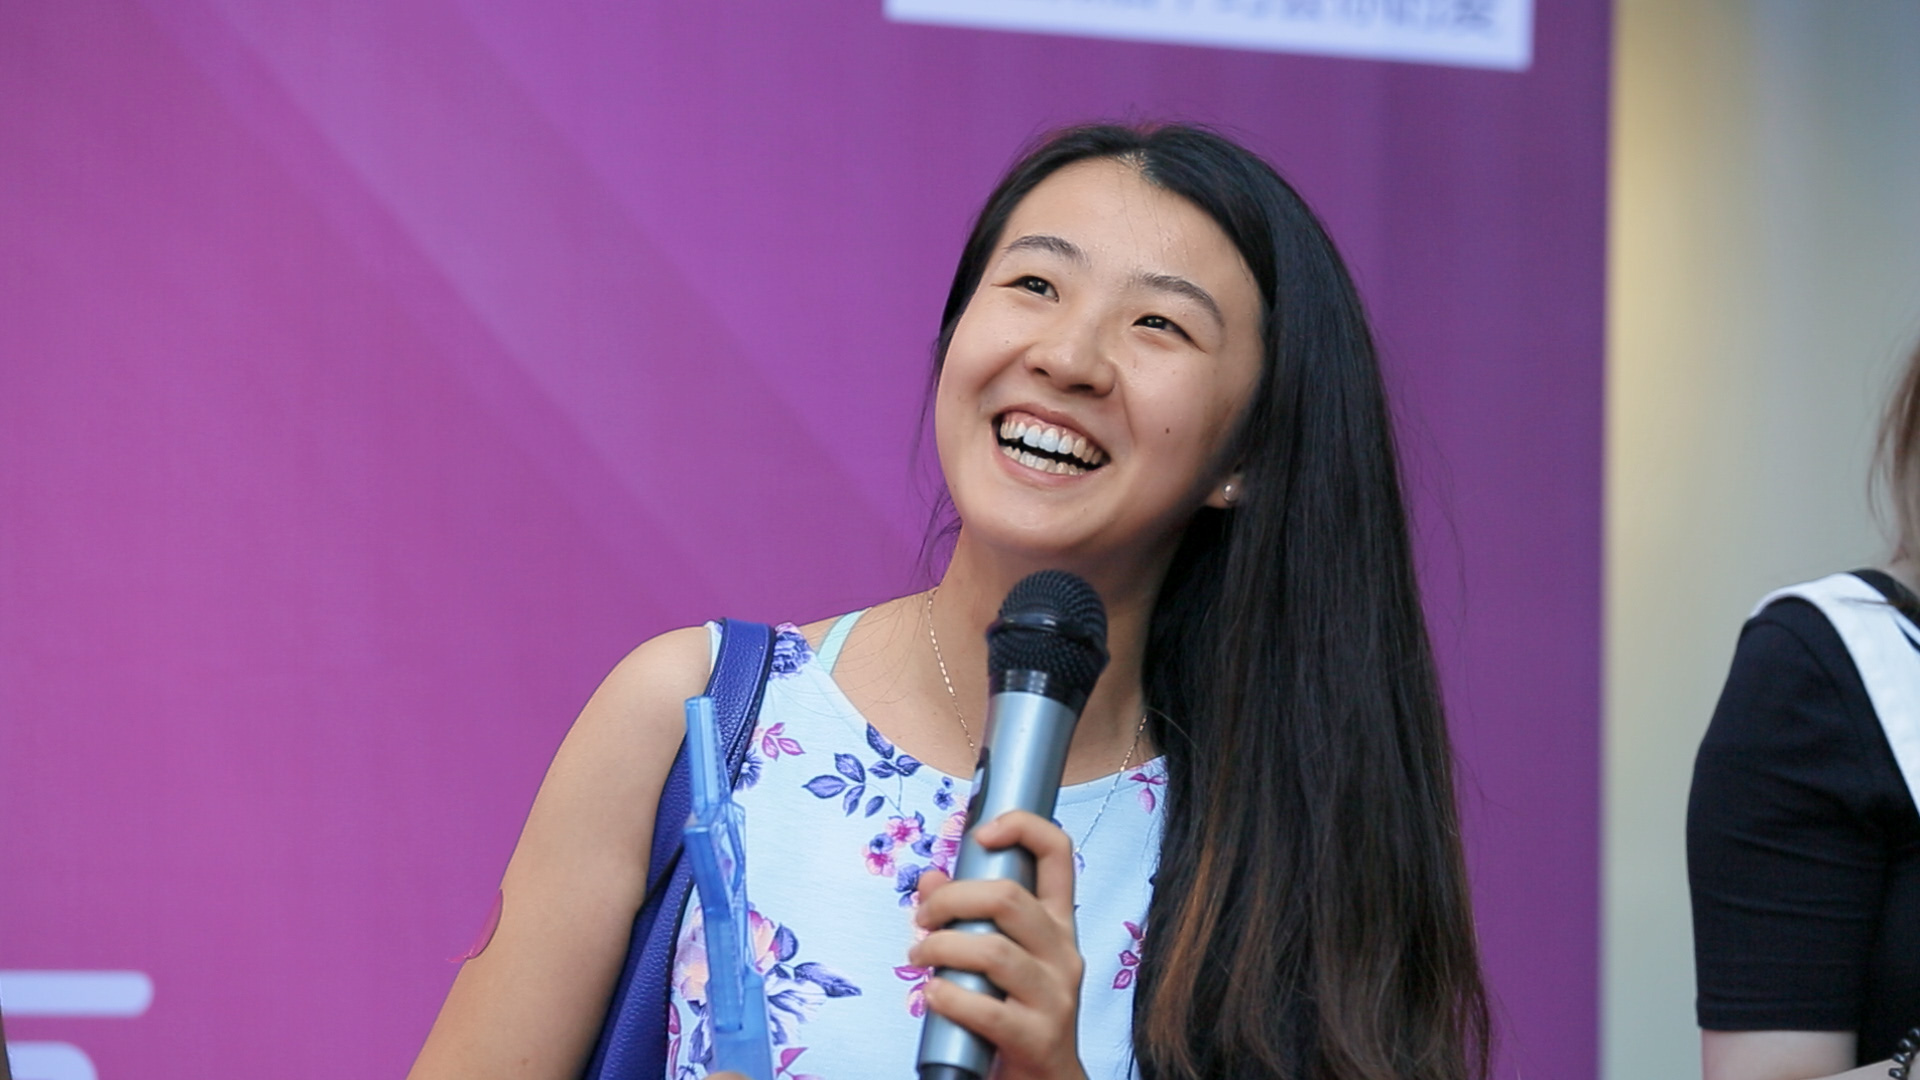 Xu Min, from Leftover Women, speaks to single men at a matchmaker event in China